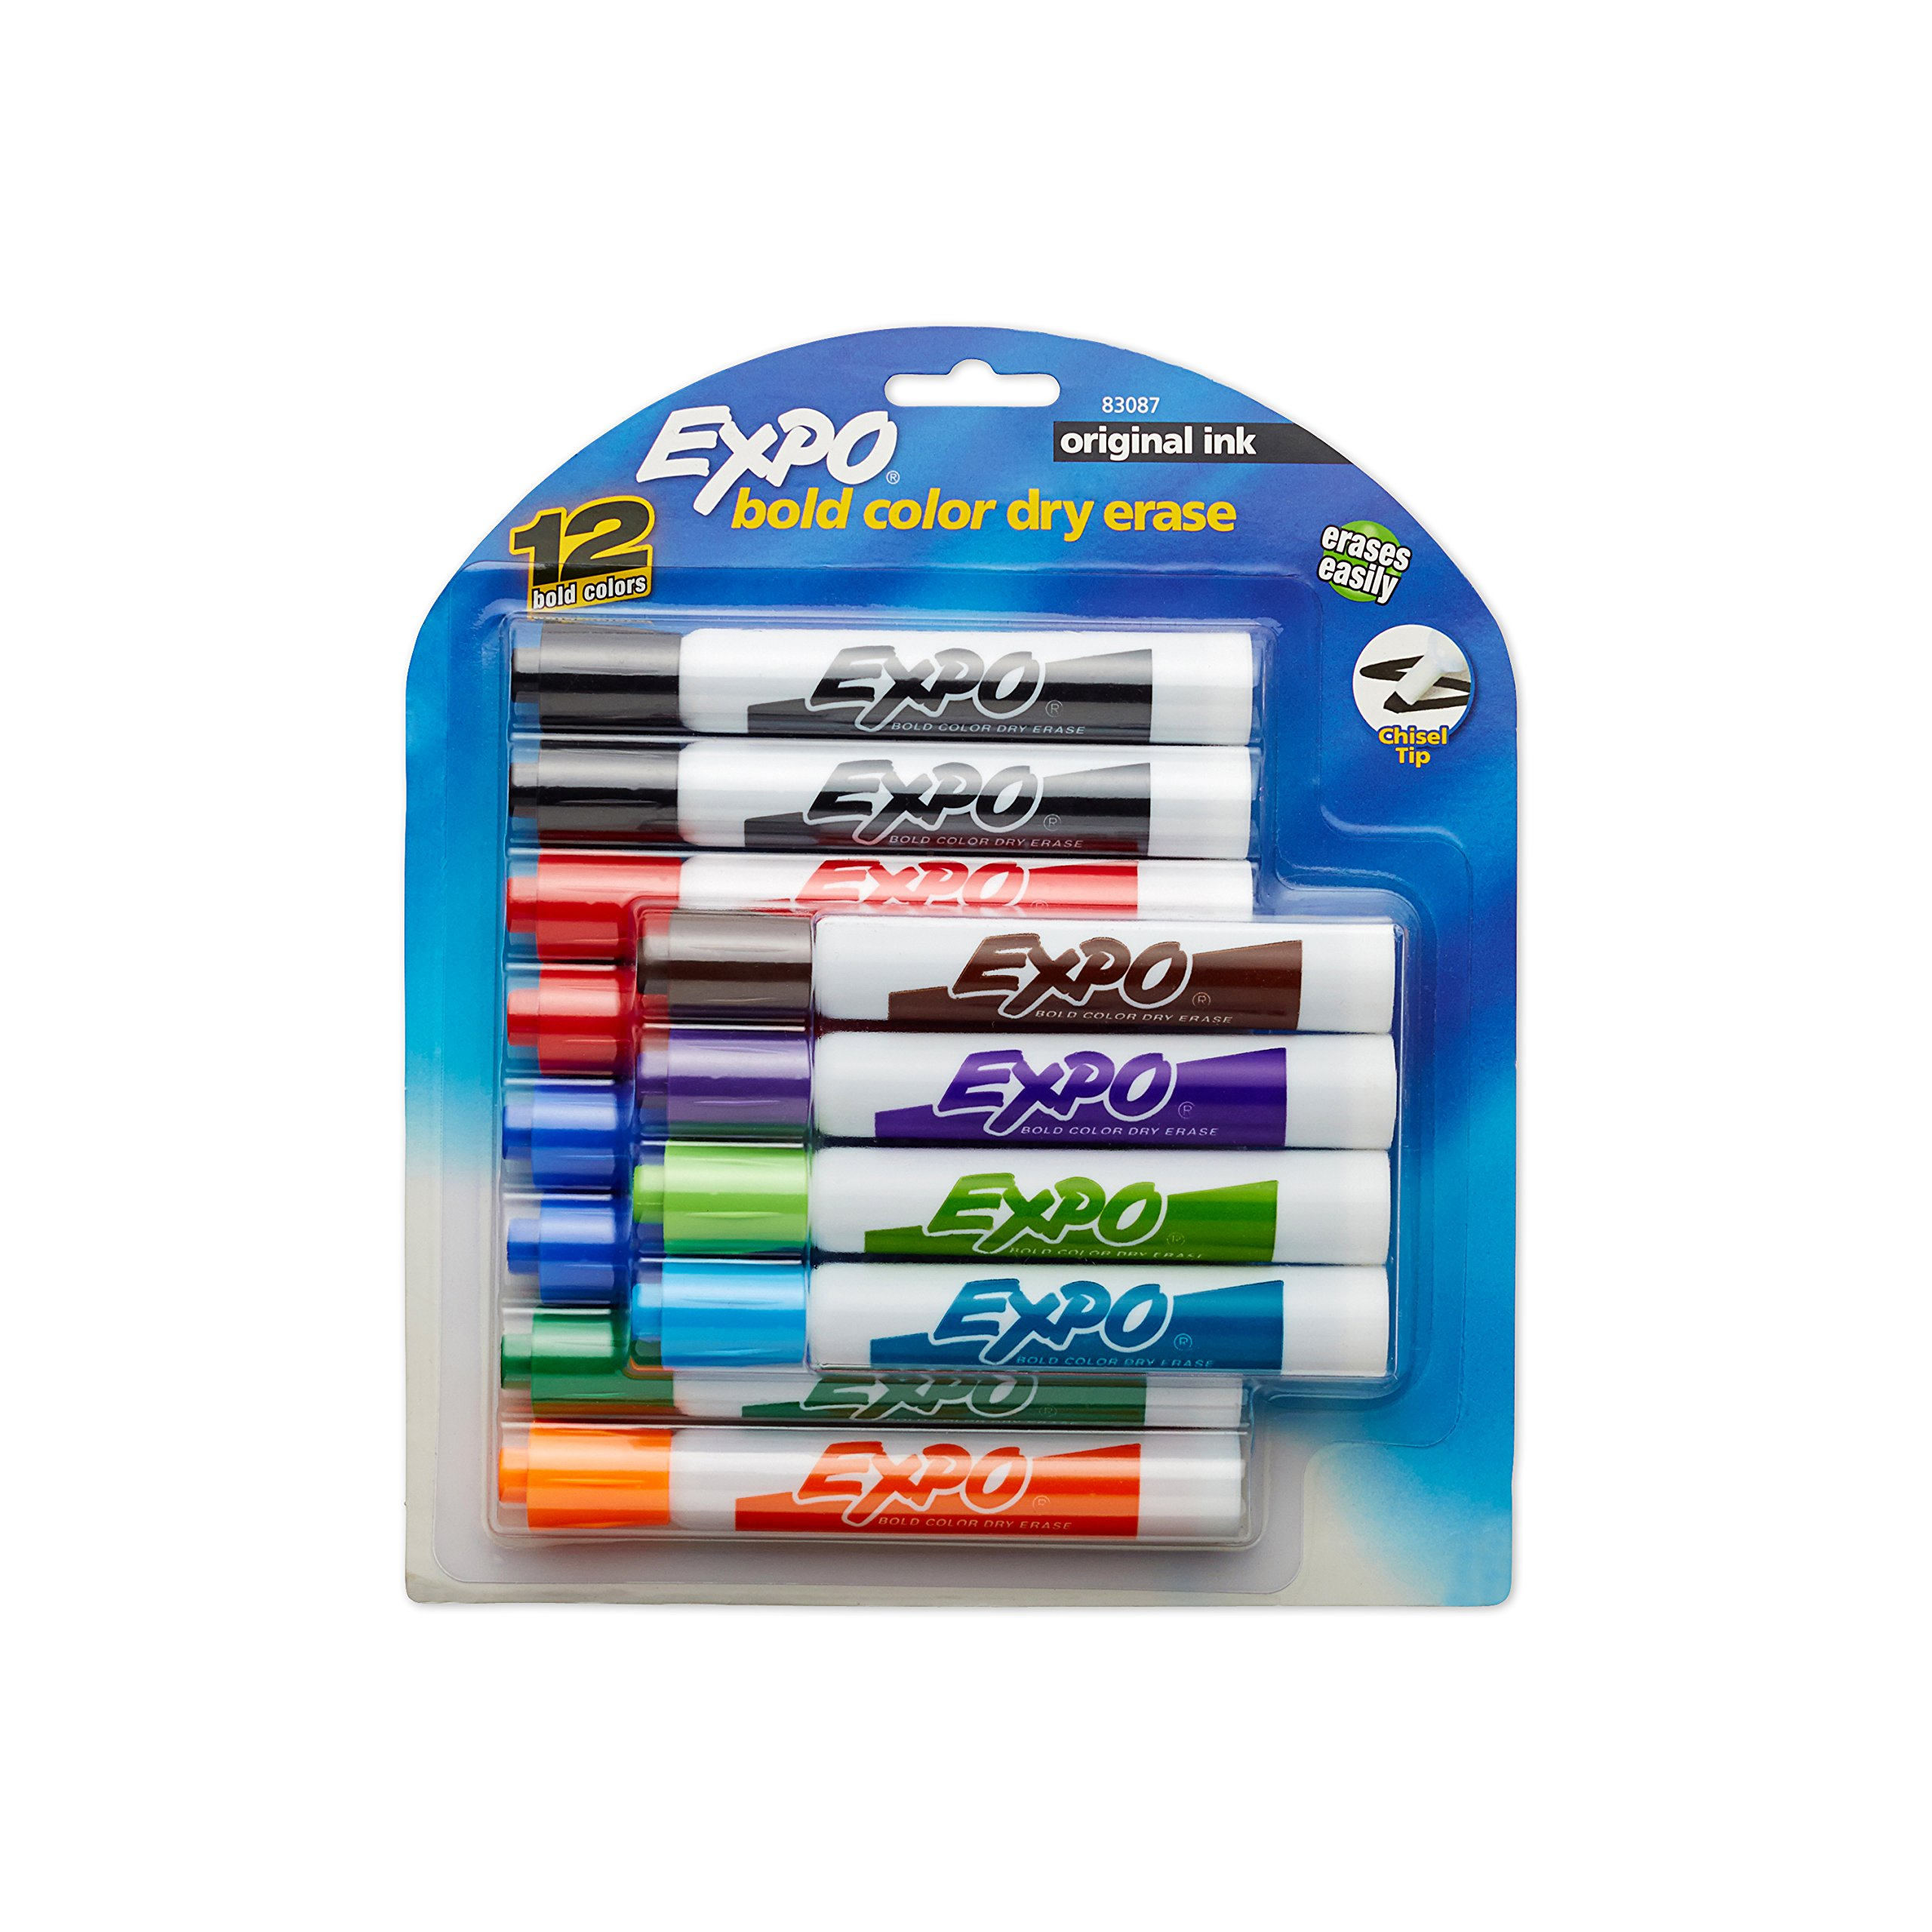 EXPO Original Dry Erase Markers, Chisel Tip, Assorted Colors, 12-Count